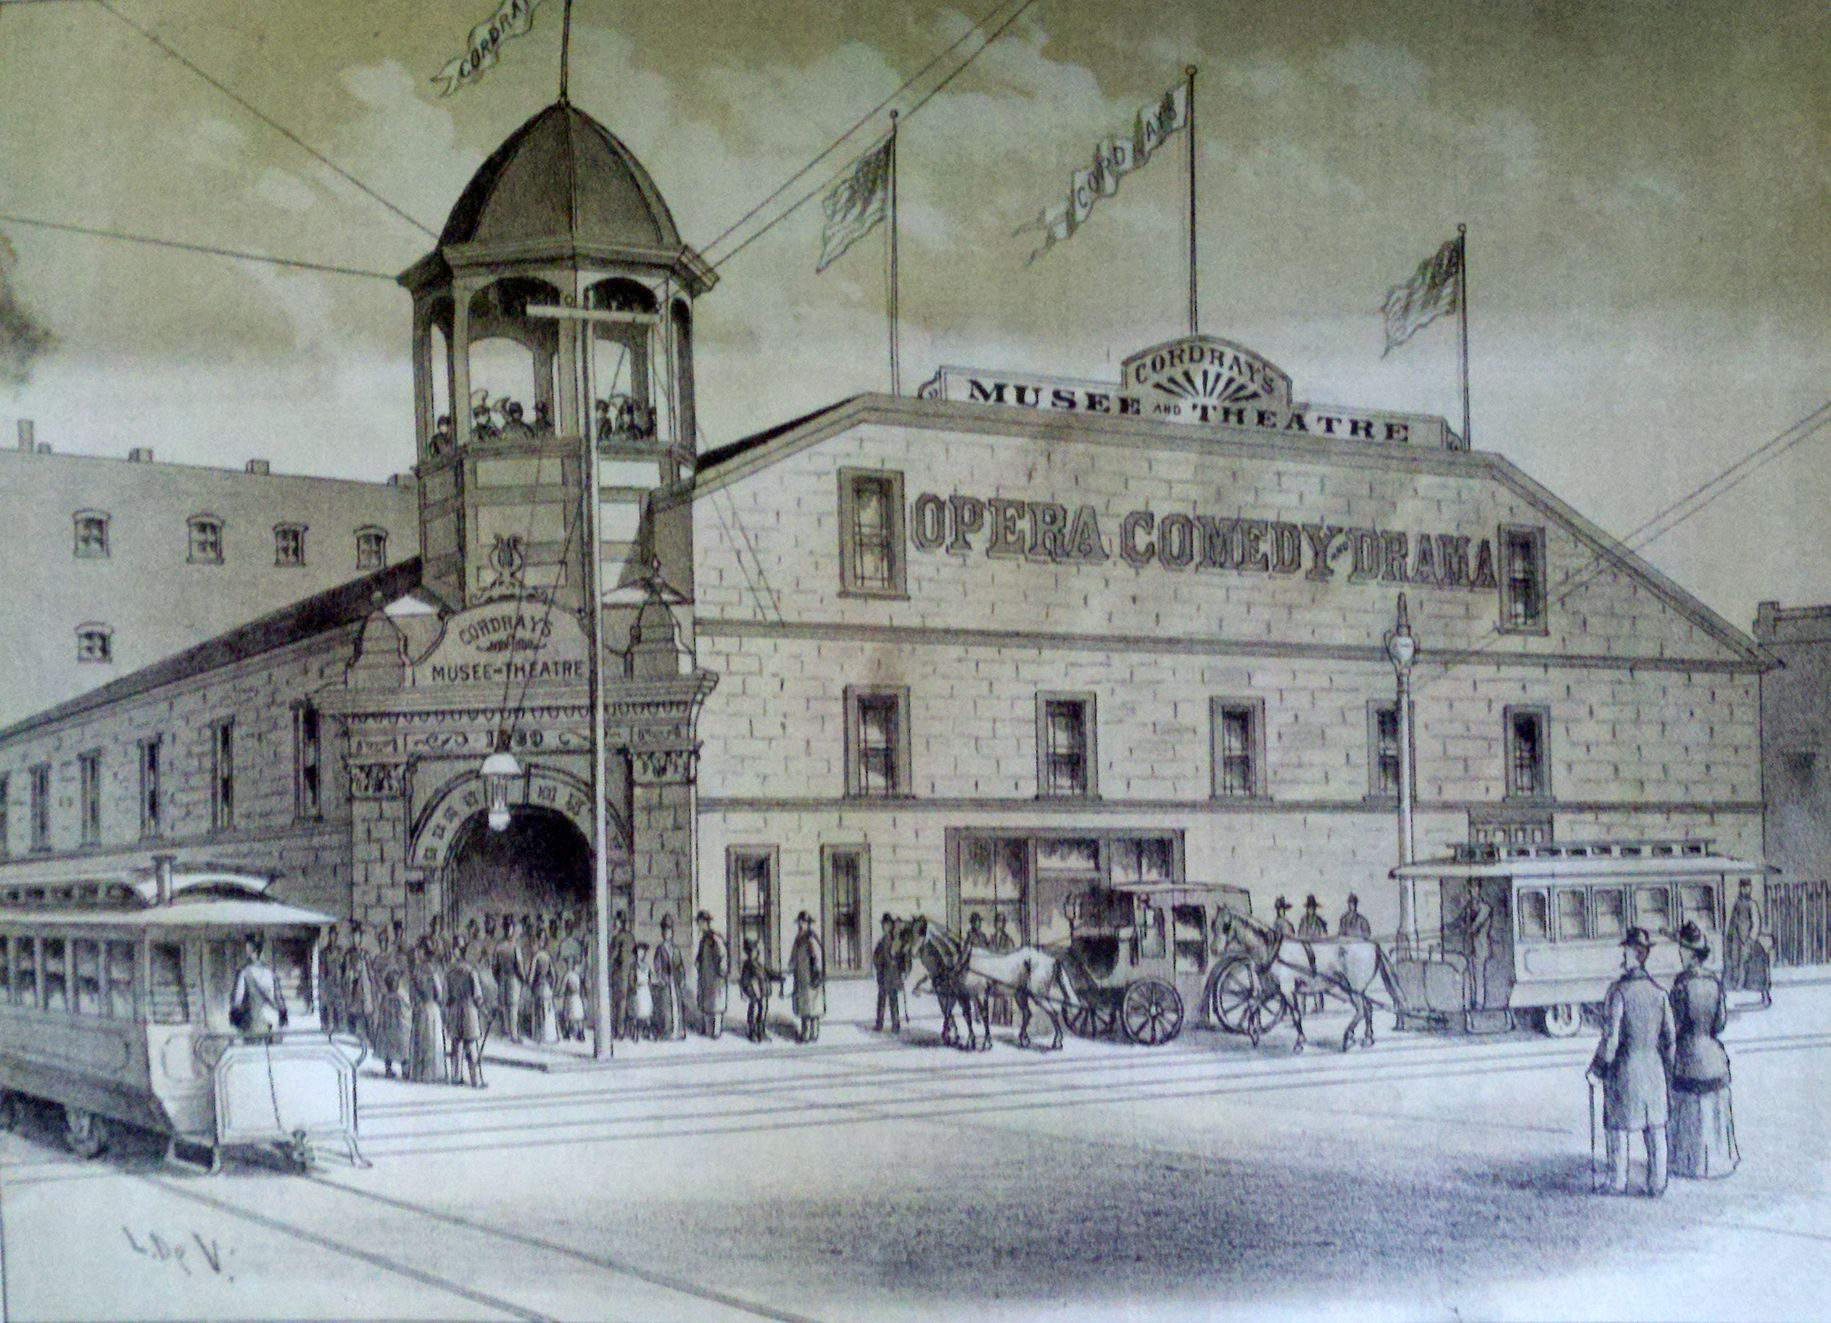 Cordrayu0027s Musee Theatre, A Popular Vaudeville House In Downtown Portland,  As It Appeared In The Late (Image: The West Shore Magazine)